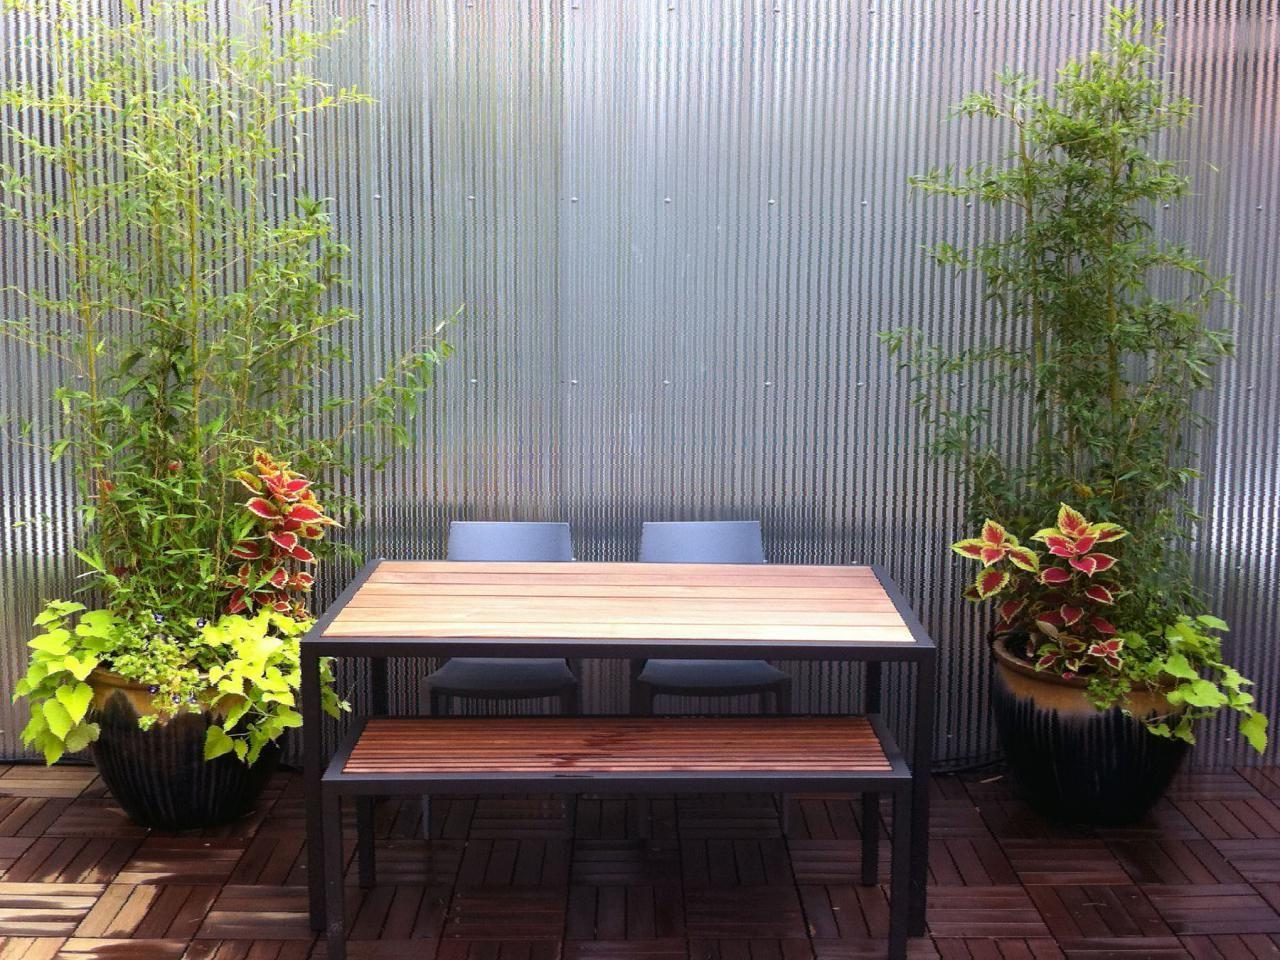 corrugated sheet is originally a material for outdoor use